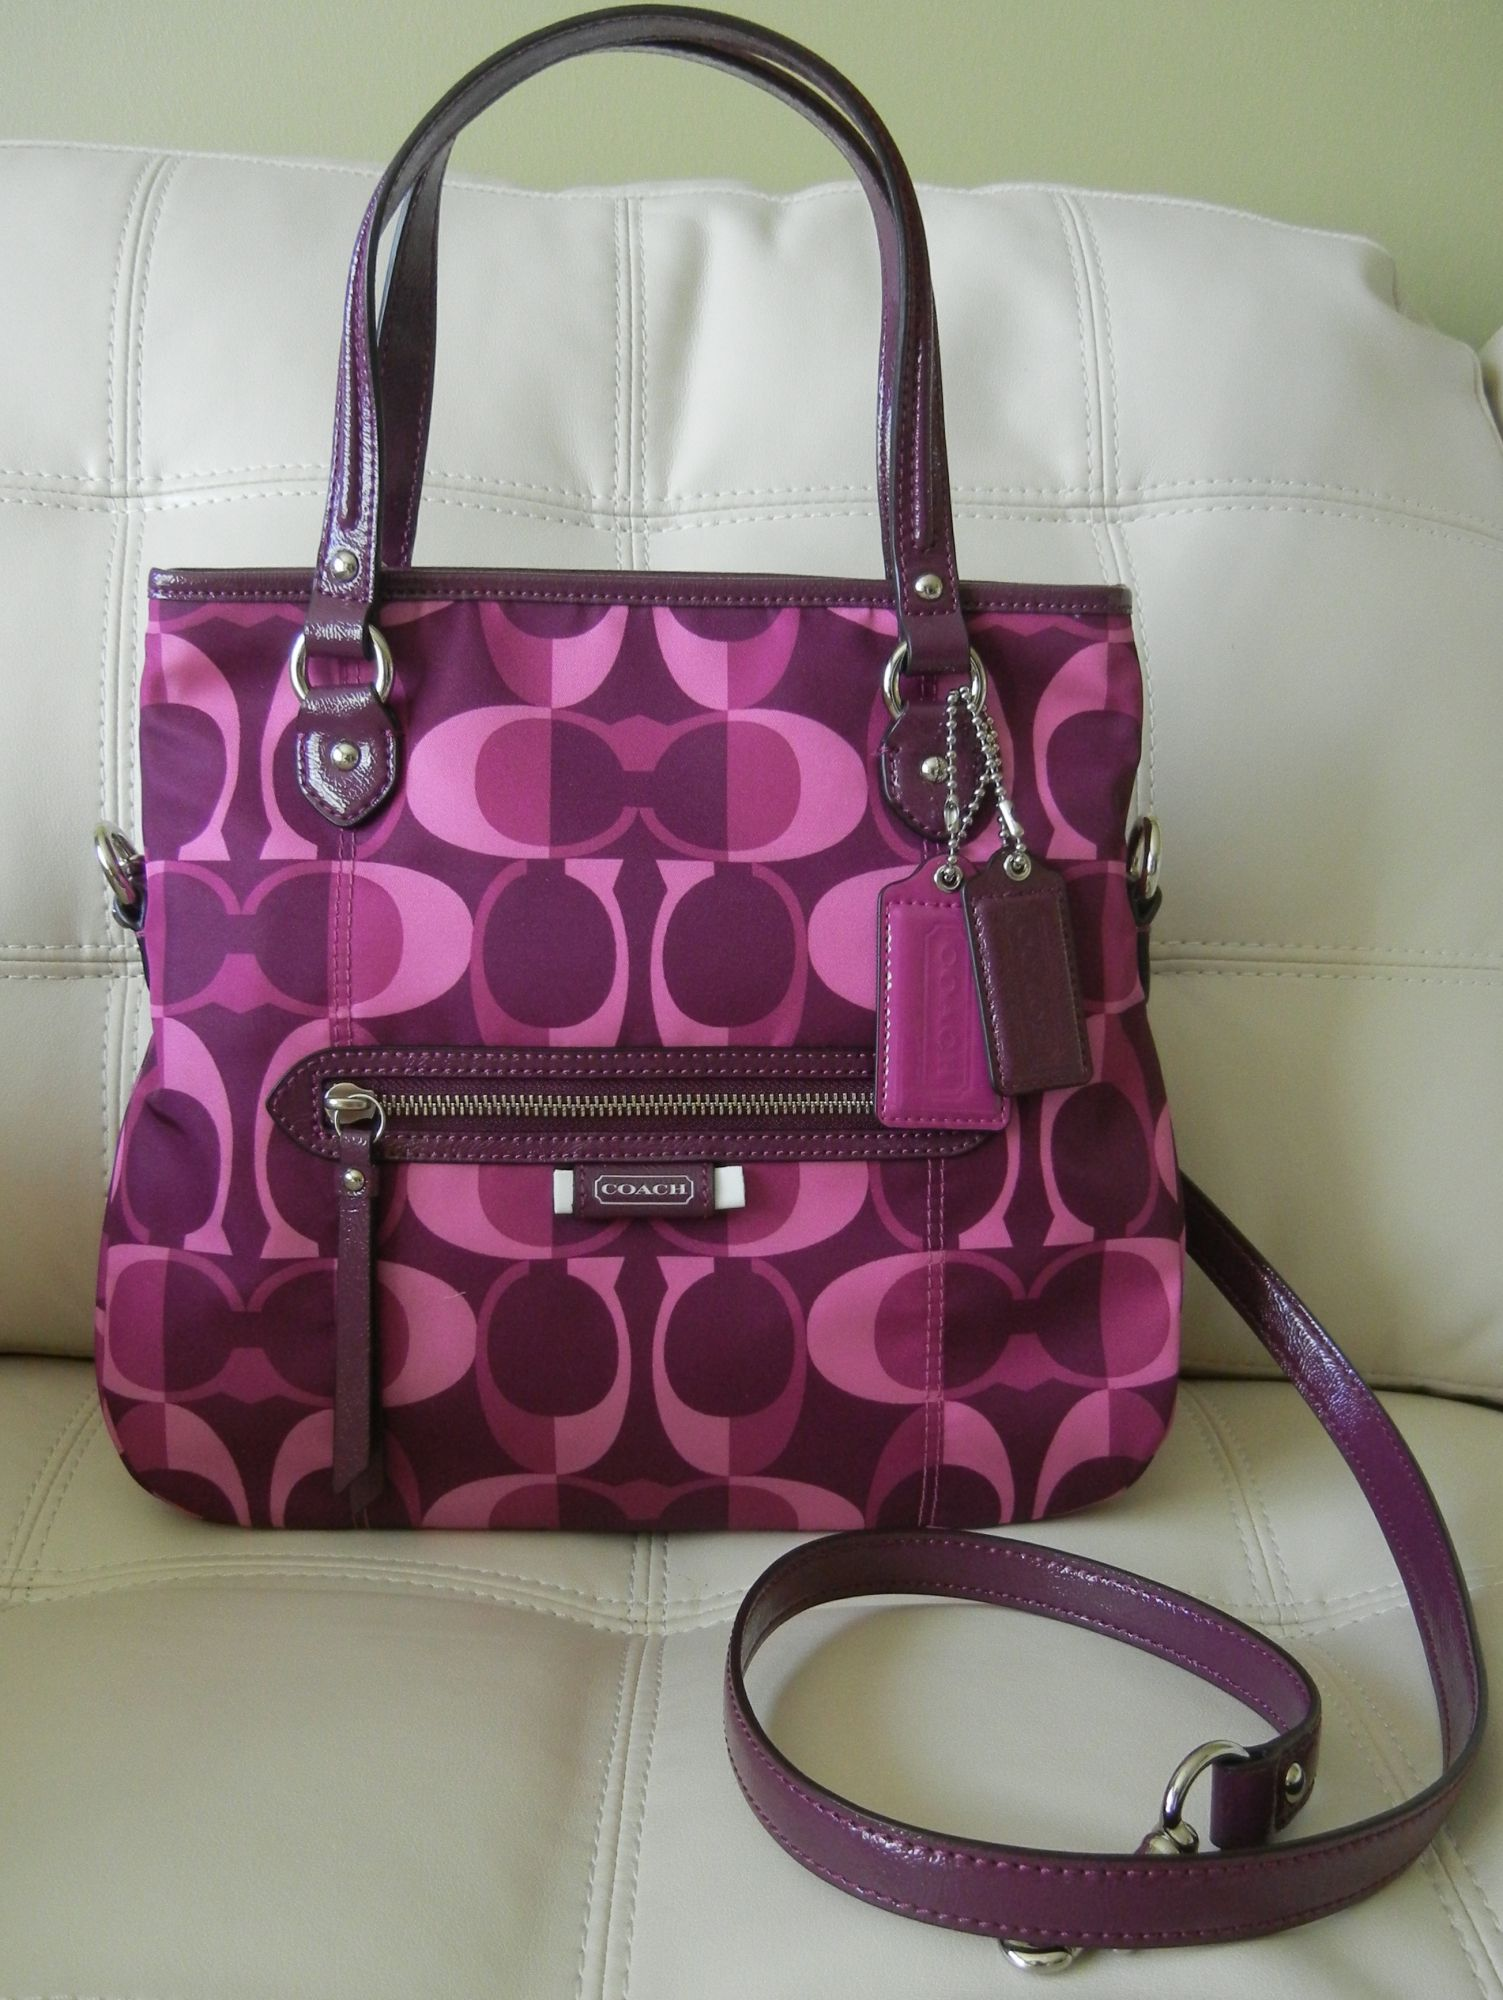 This Colorful Flirty Bag from Coach is a sure hit! With its Split C Fabric  in Delicious Berry it is a Perfect Handbag for the Upcoming Spring Weather. 3b0a1f20b88e7